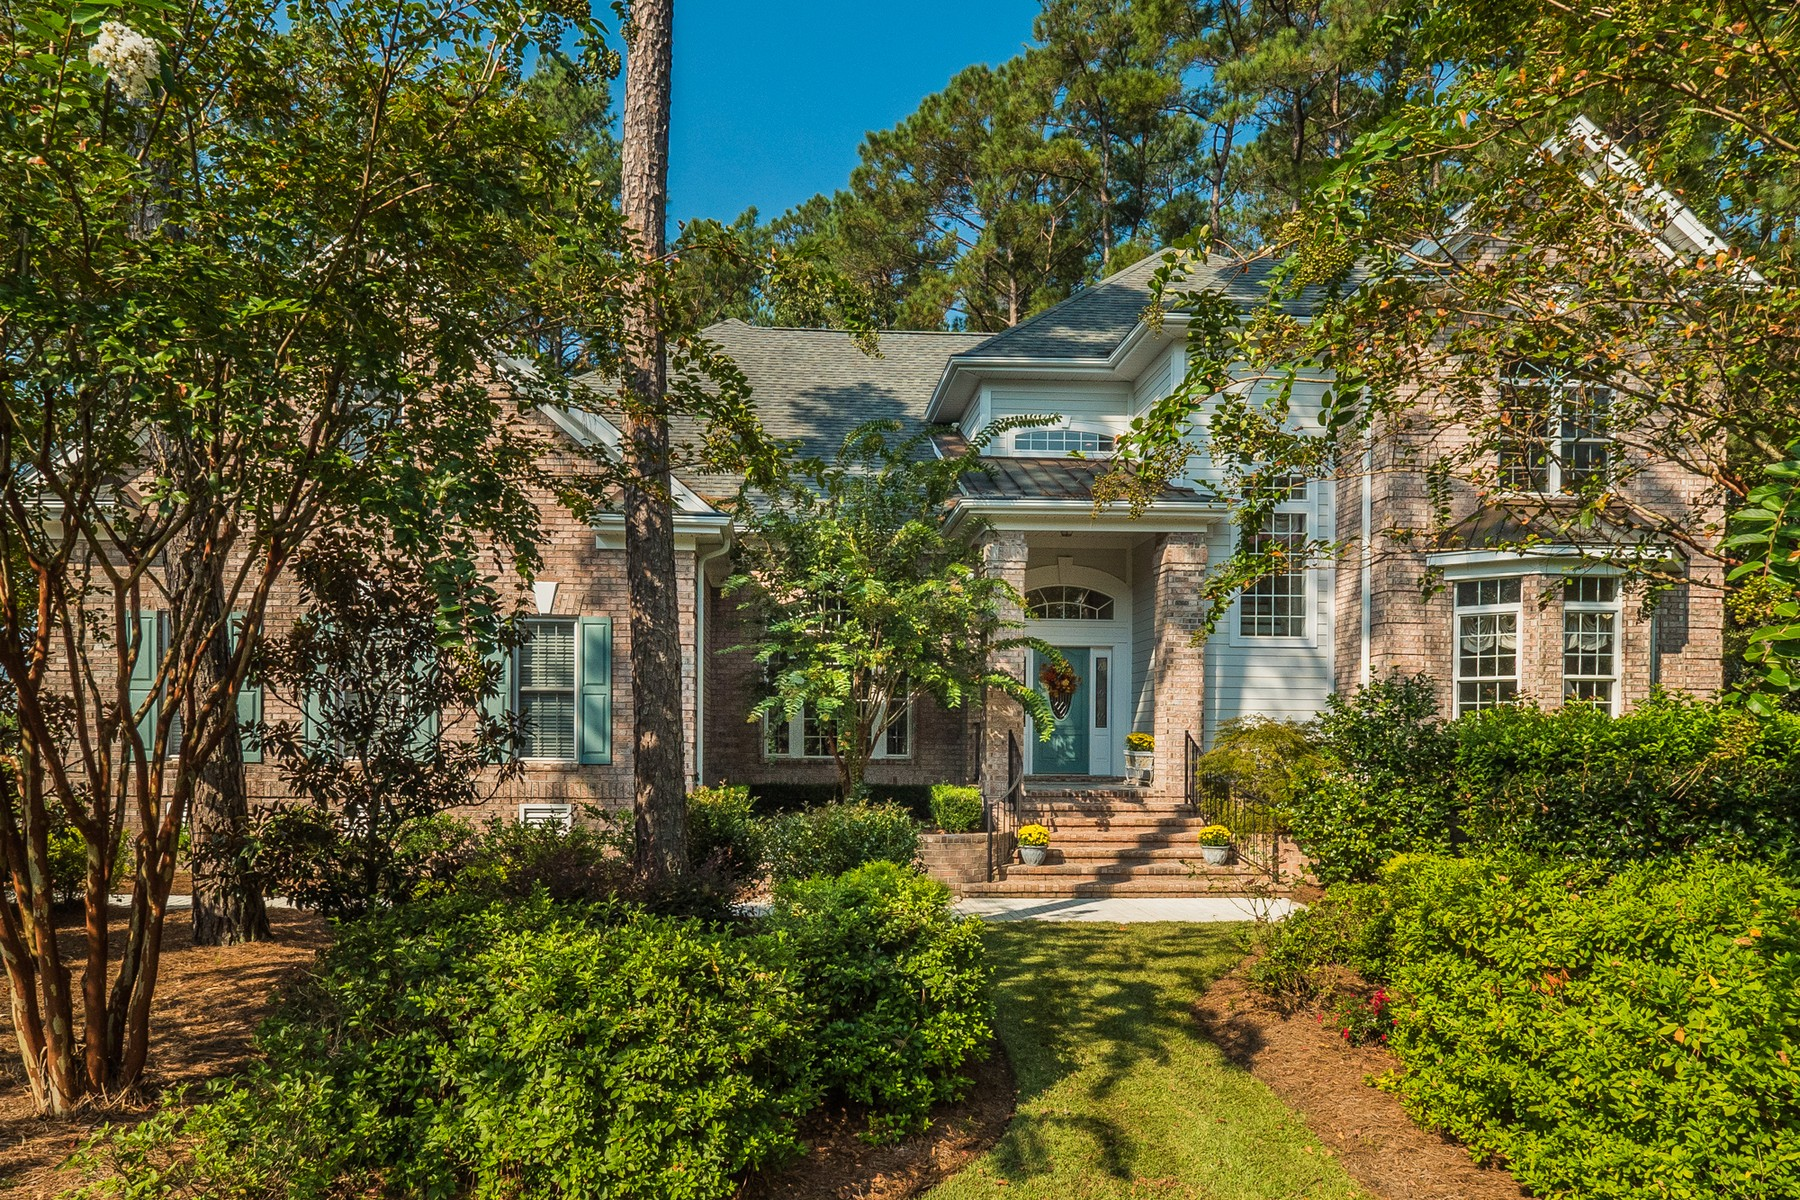 Single Family Home for Sale at Grandeur Awaits in Private Gated Community 145 Windsor Circle SW, Ocean Isle Beach, North Carolina, 28469 United States